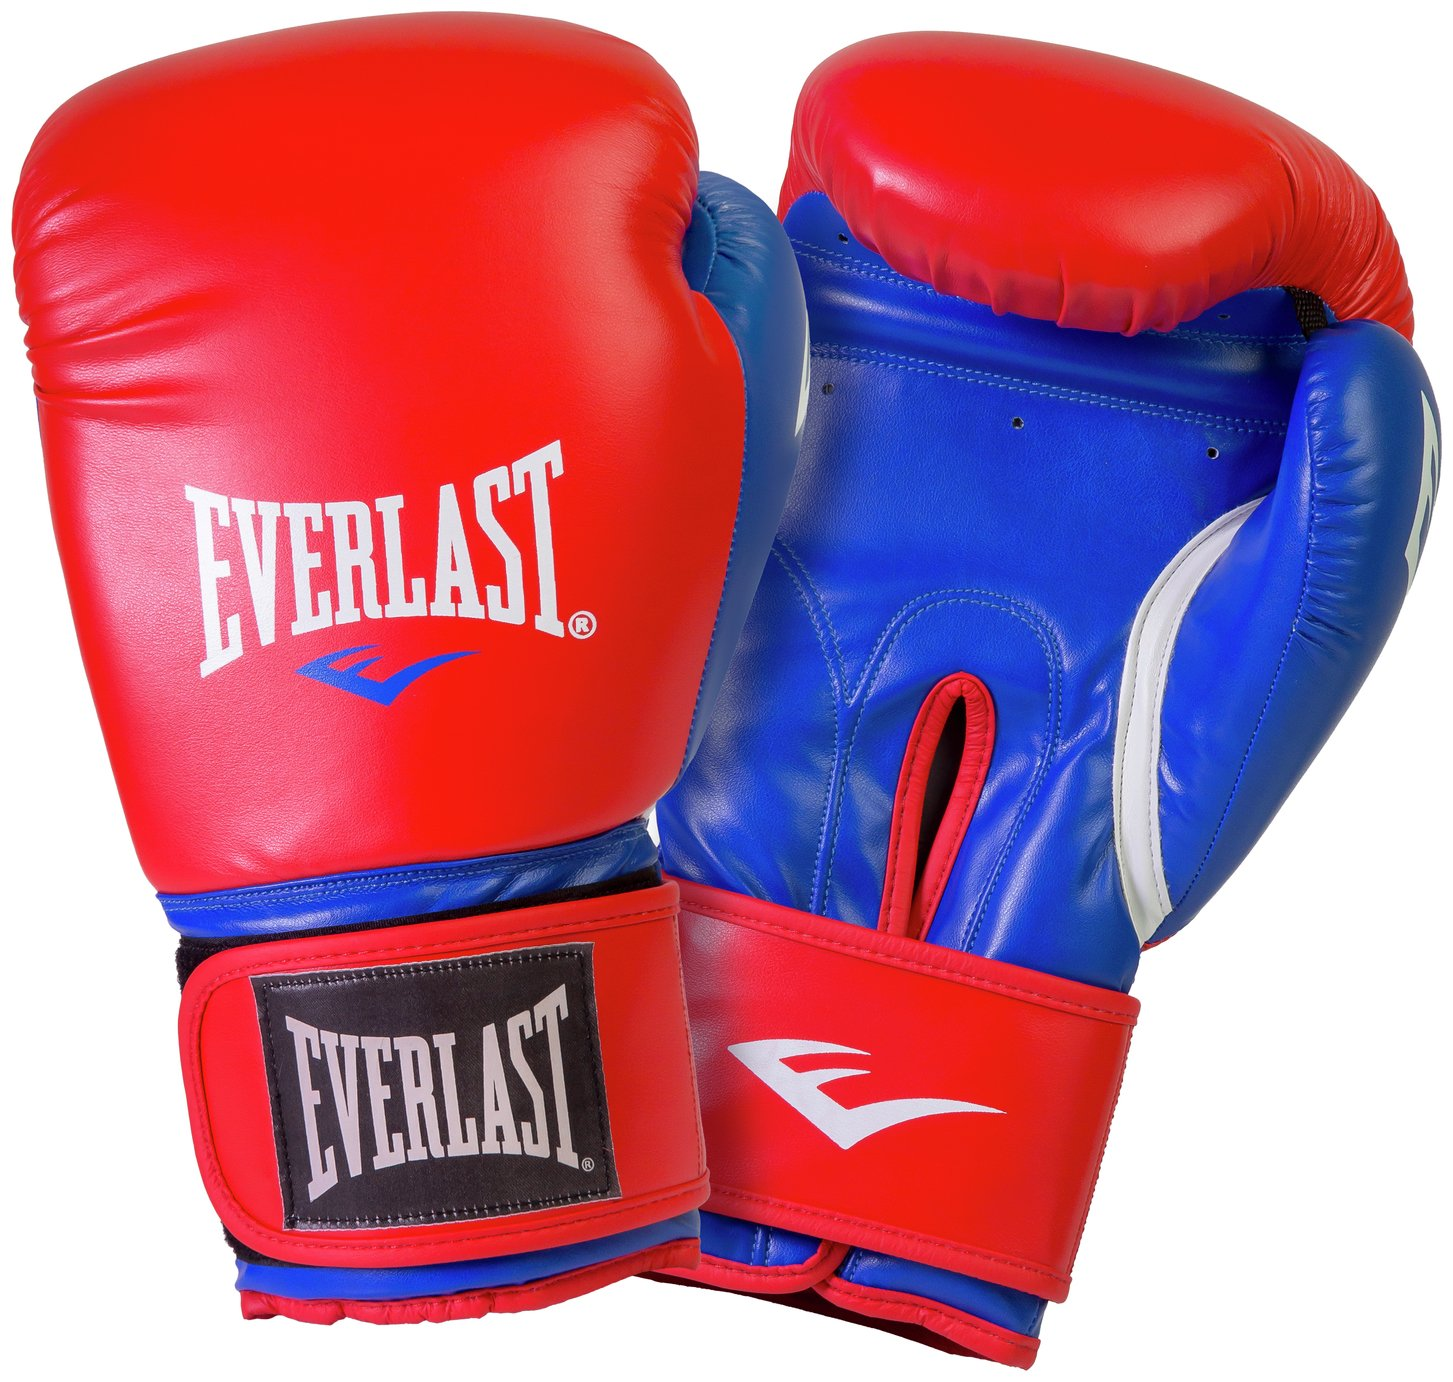 Everlast 14oz Boxing Gloves